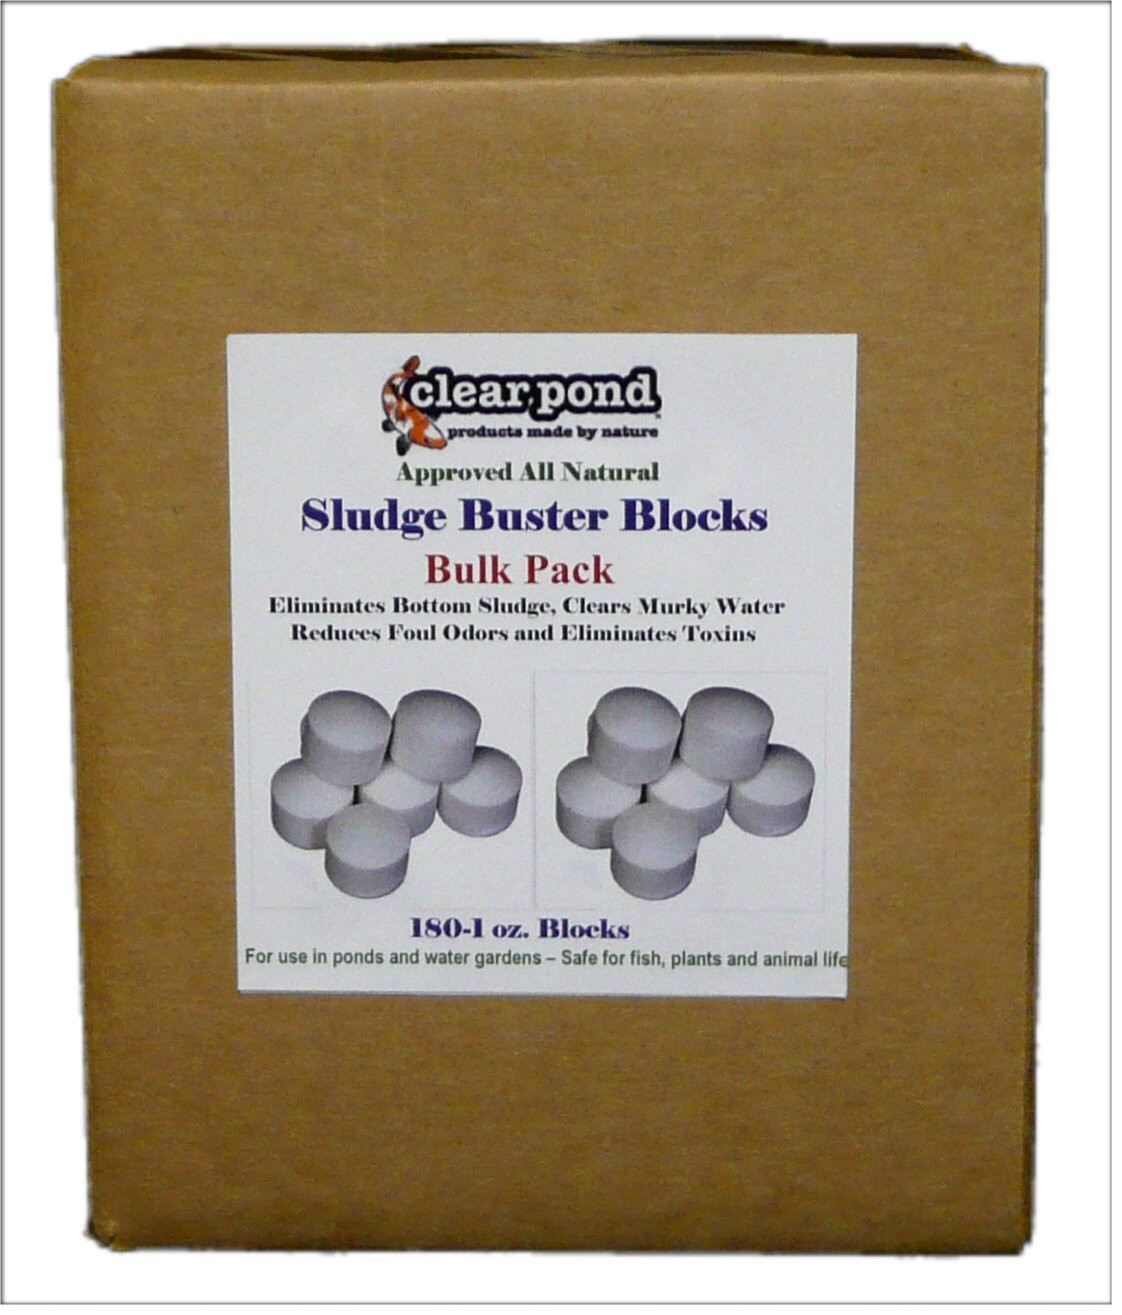 Clear Pond Sludge Buster Blocks - Pack of 180 1-Ounce Blocks